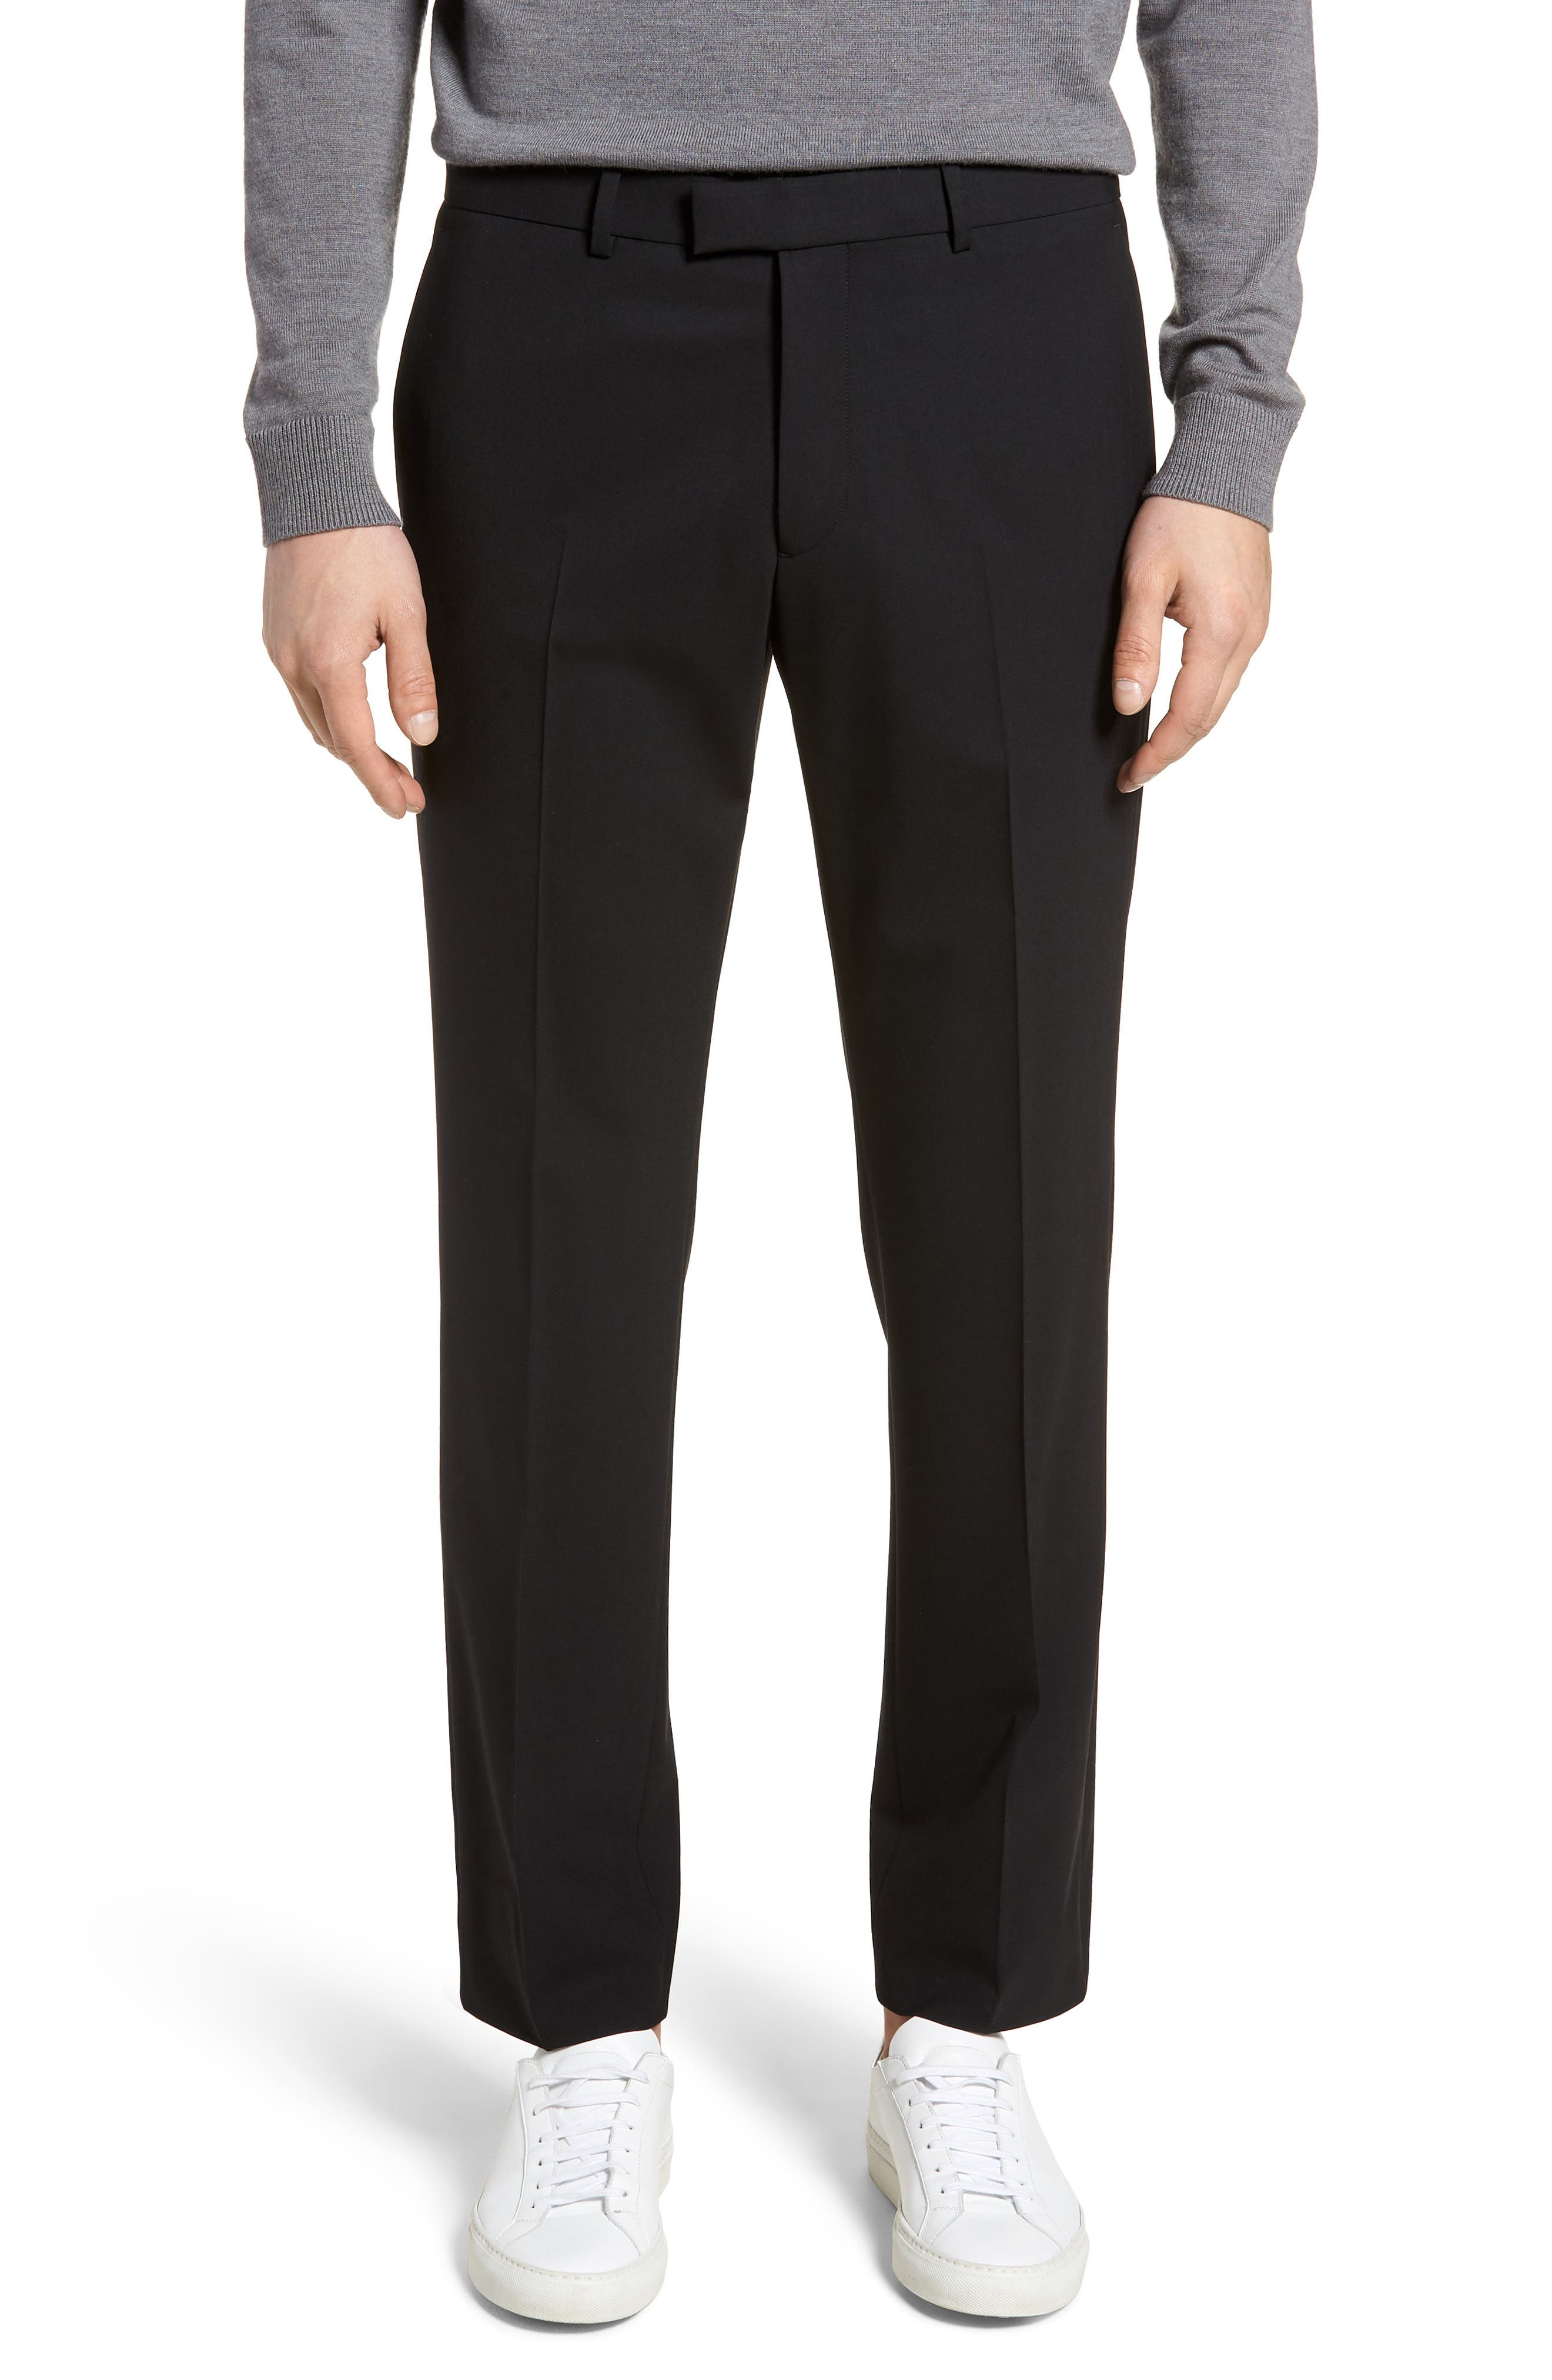 Marlo Flat Front Stretch Wool Pants,                         Main,                         color, 001